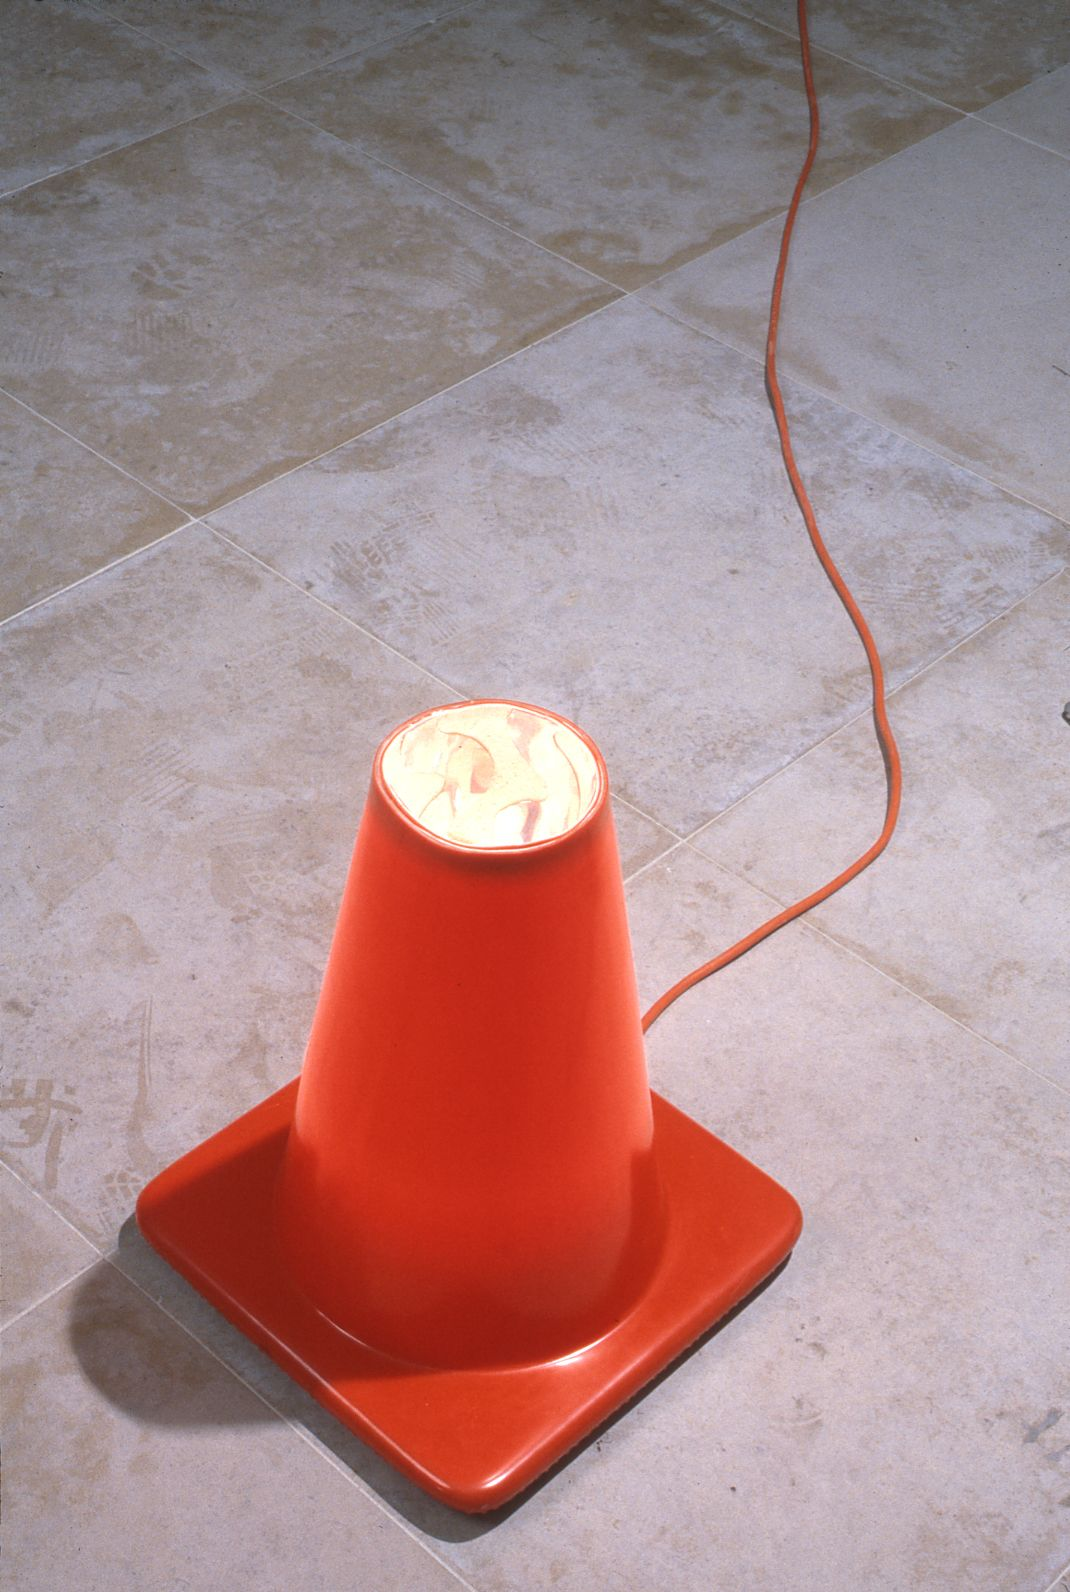 Jeff Nelson, Point, 1995 traffic cone, mylar, light source, extension cord Dimensions variable